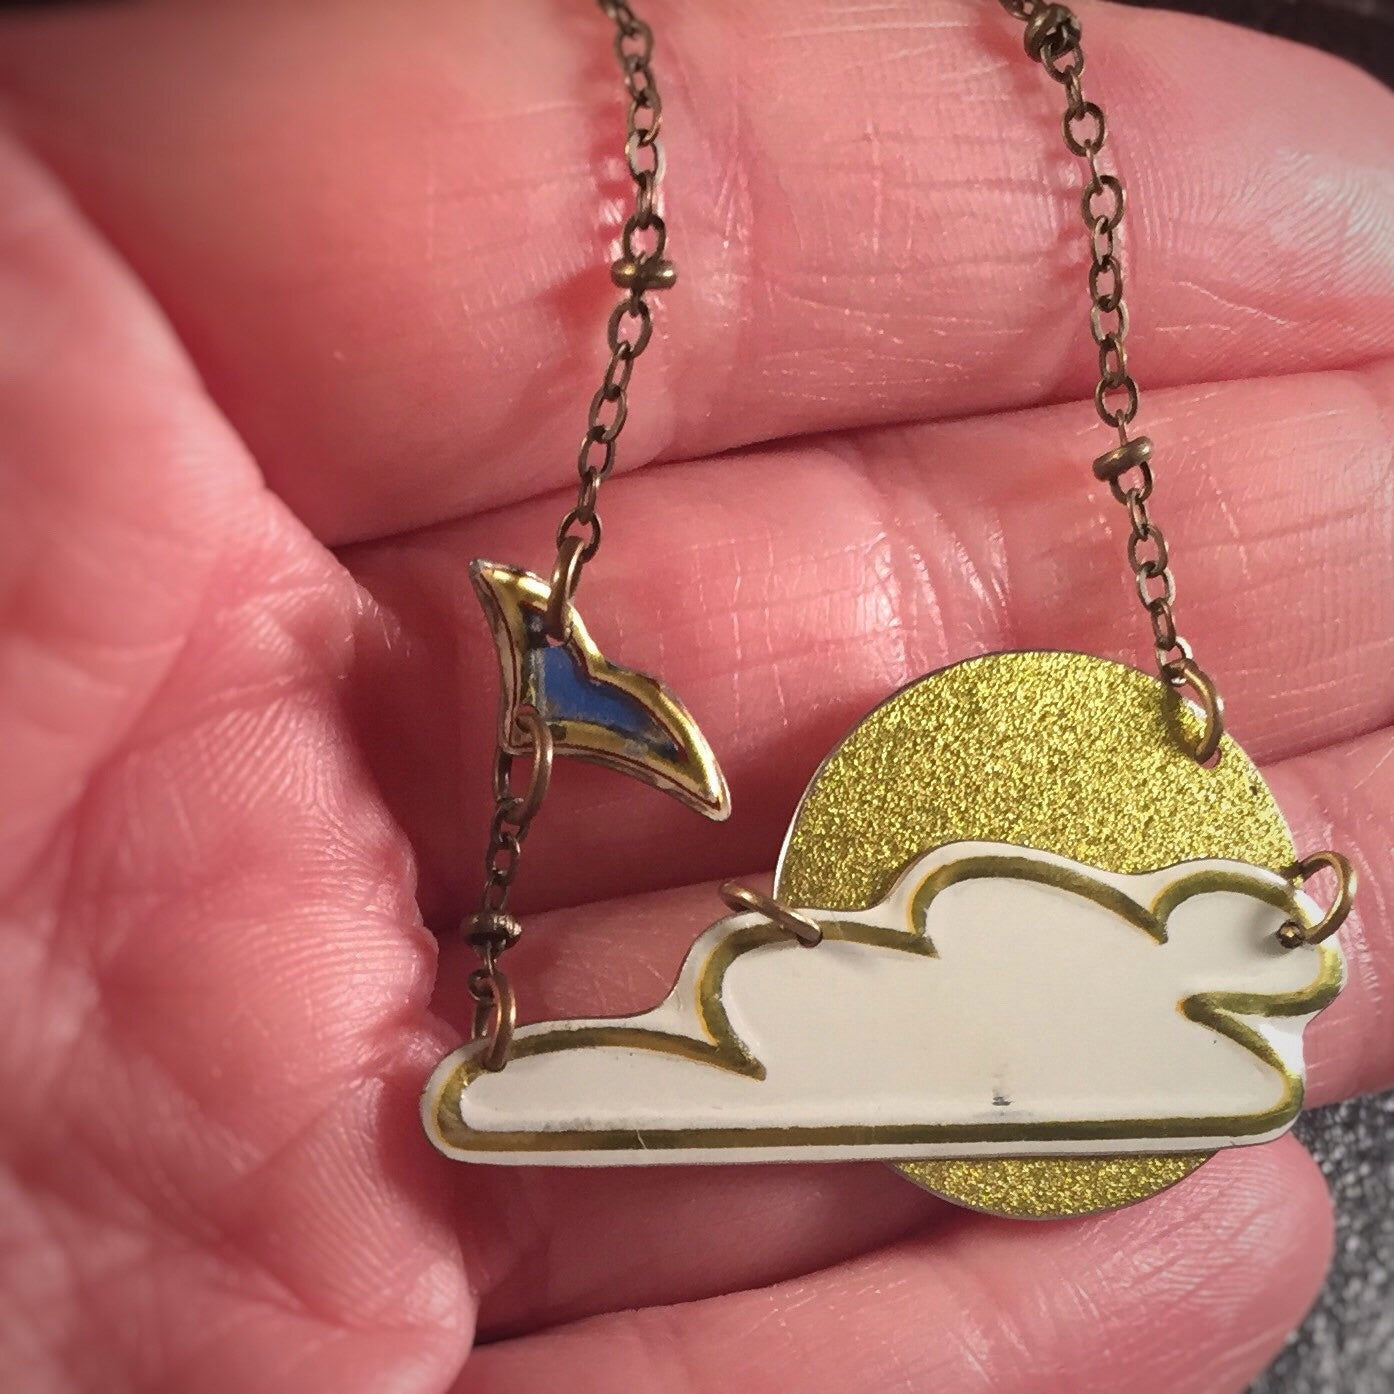 Tin Jewelry Necklace - Cloud Scene - Recycled vintage Art Jewelry In Hand